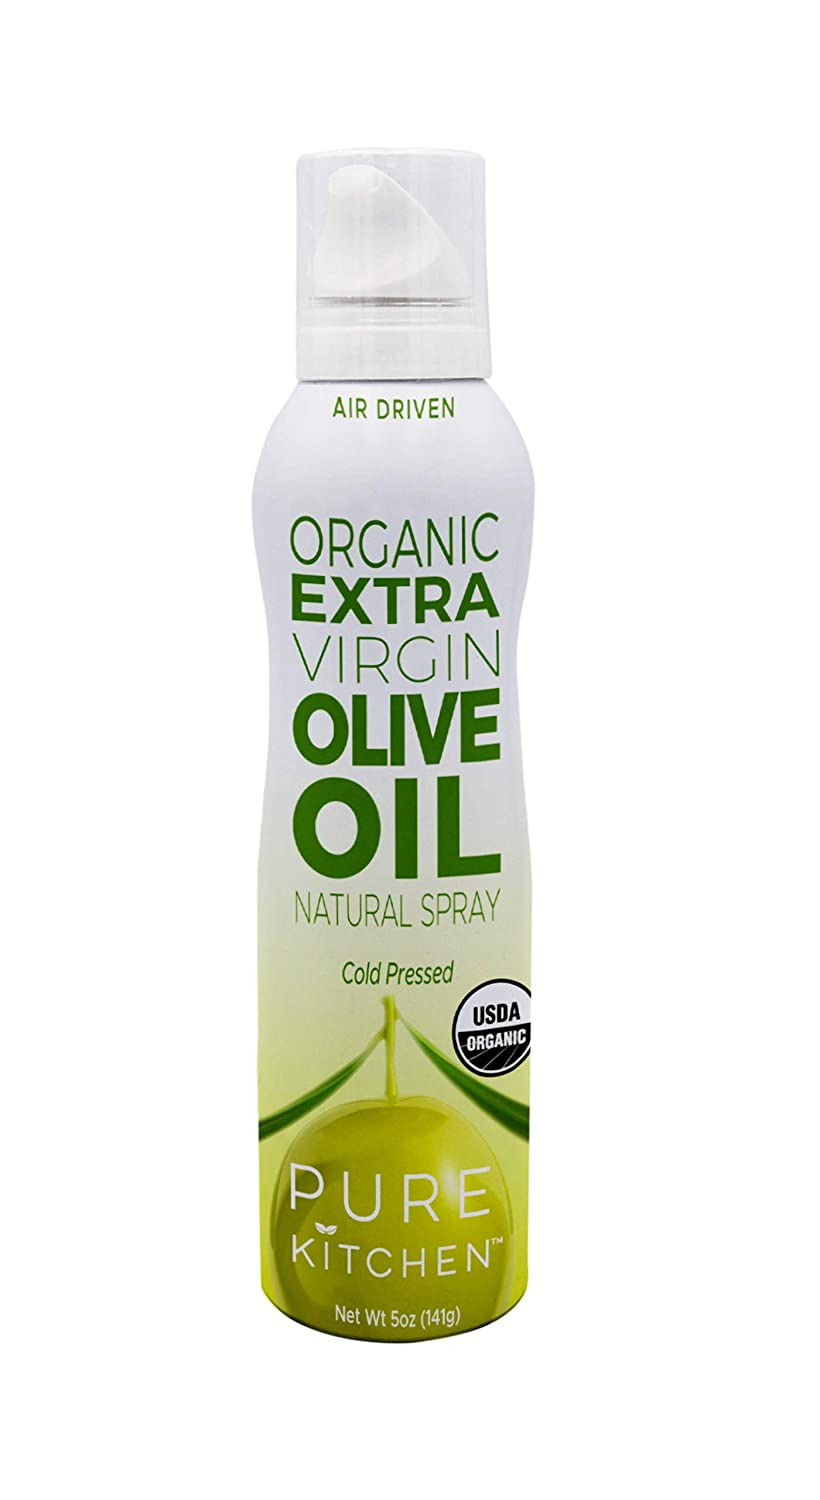 Pure Kitchen Organic Extra Virgin Olive New color Oil Spray Cooking Max 88% OFF